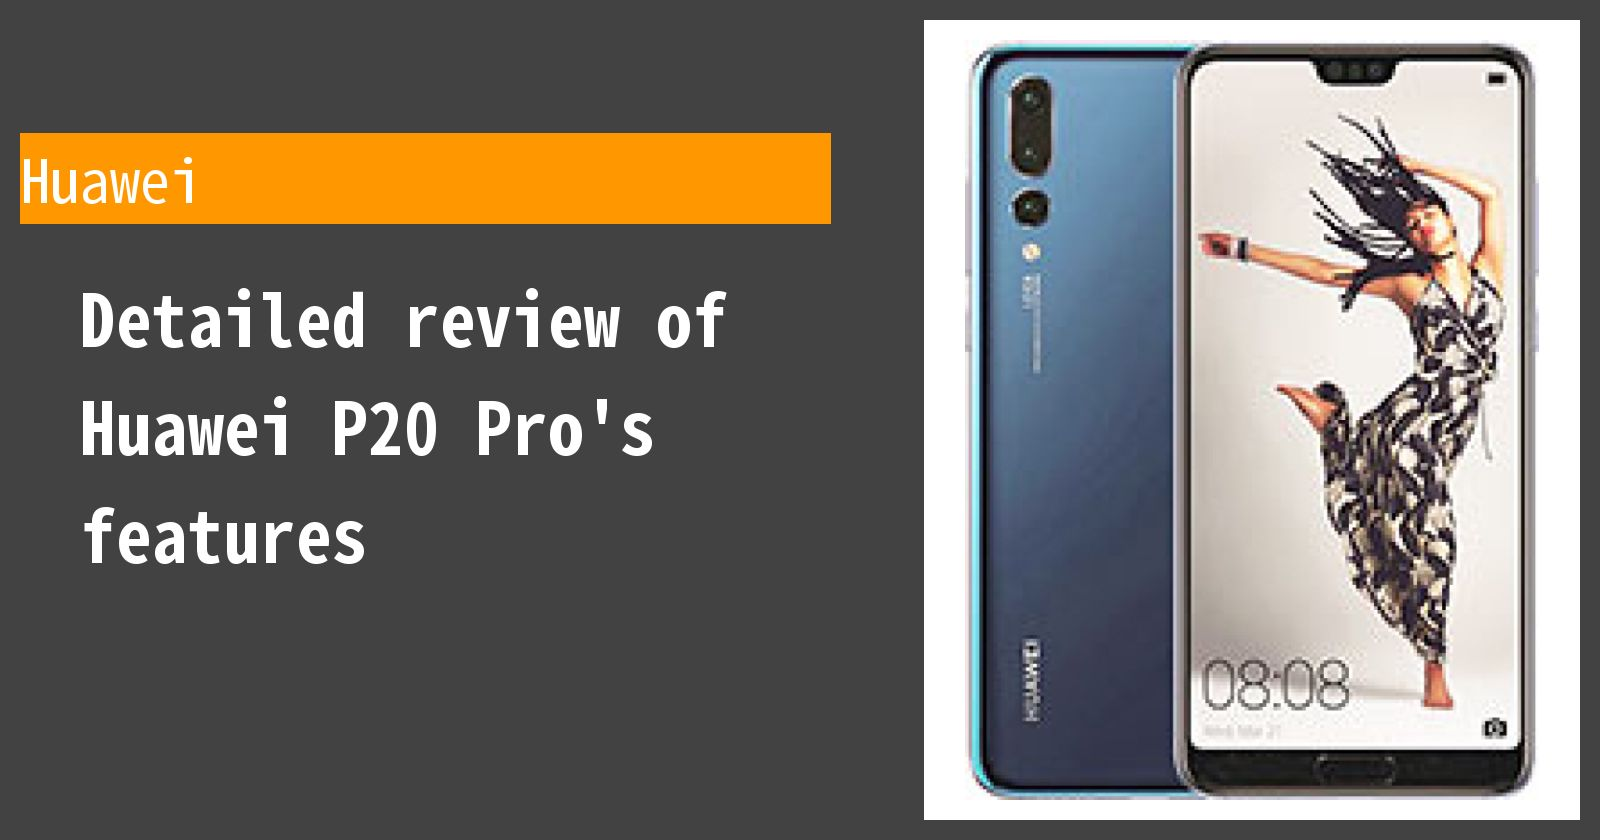 Detailed review of Huawei P20 Pro's features